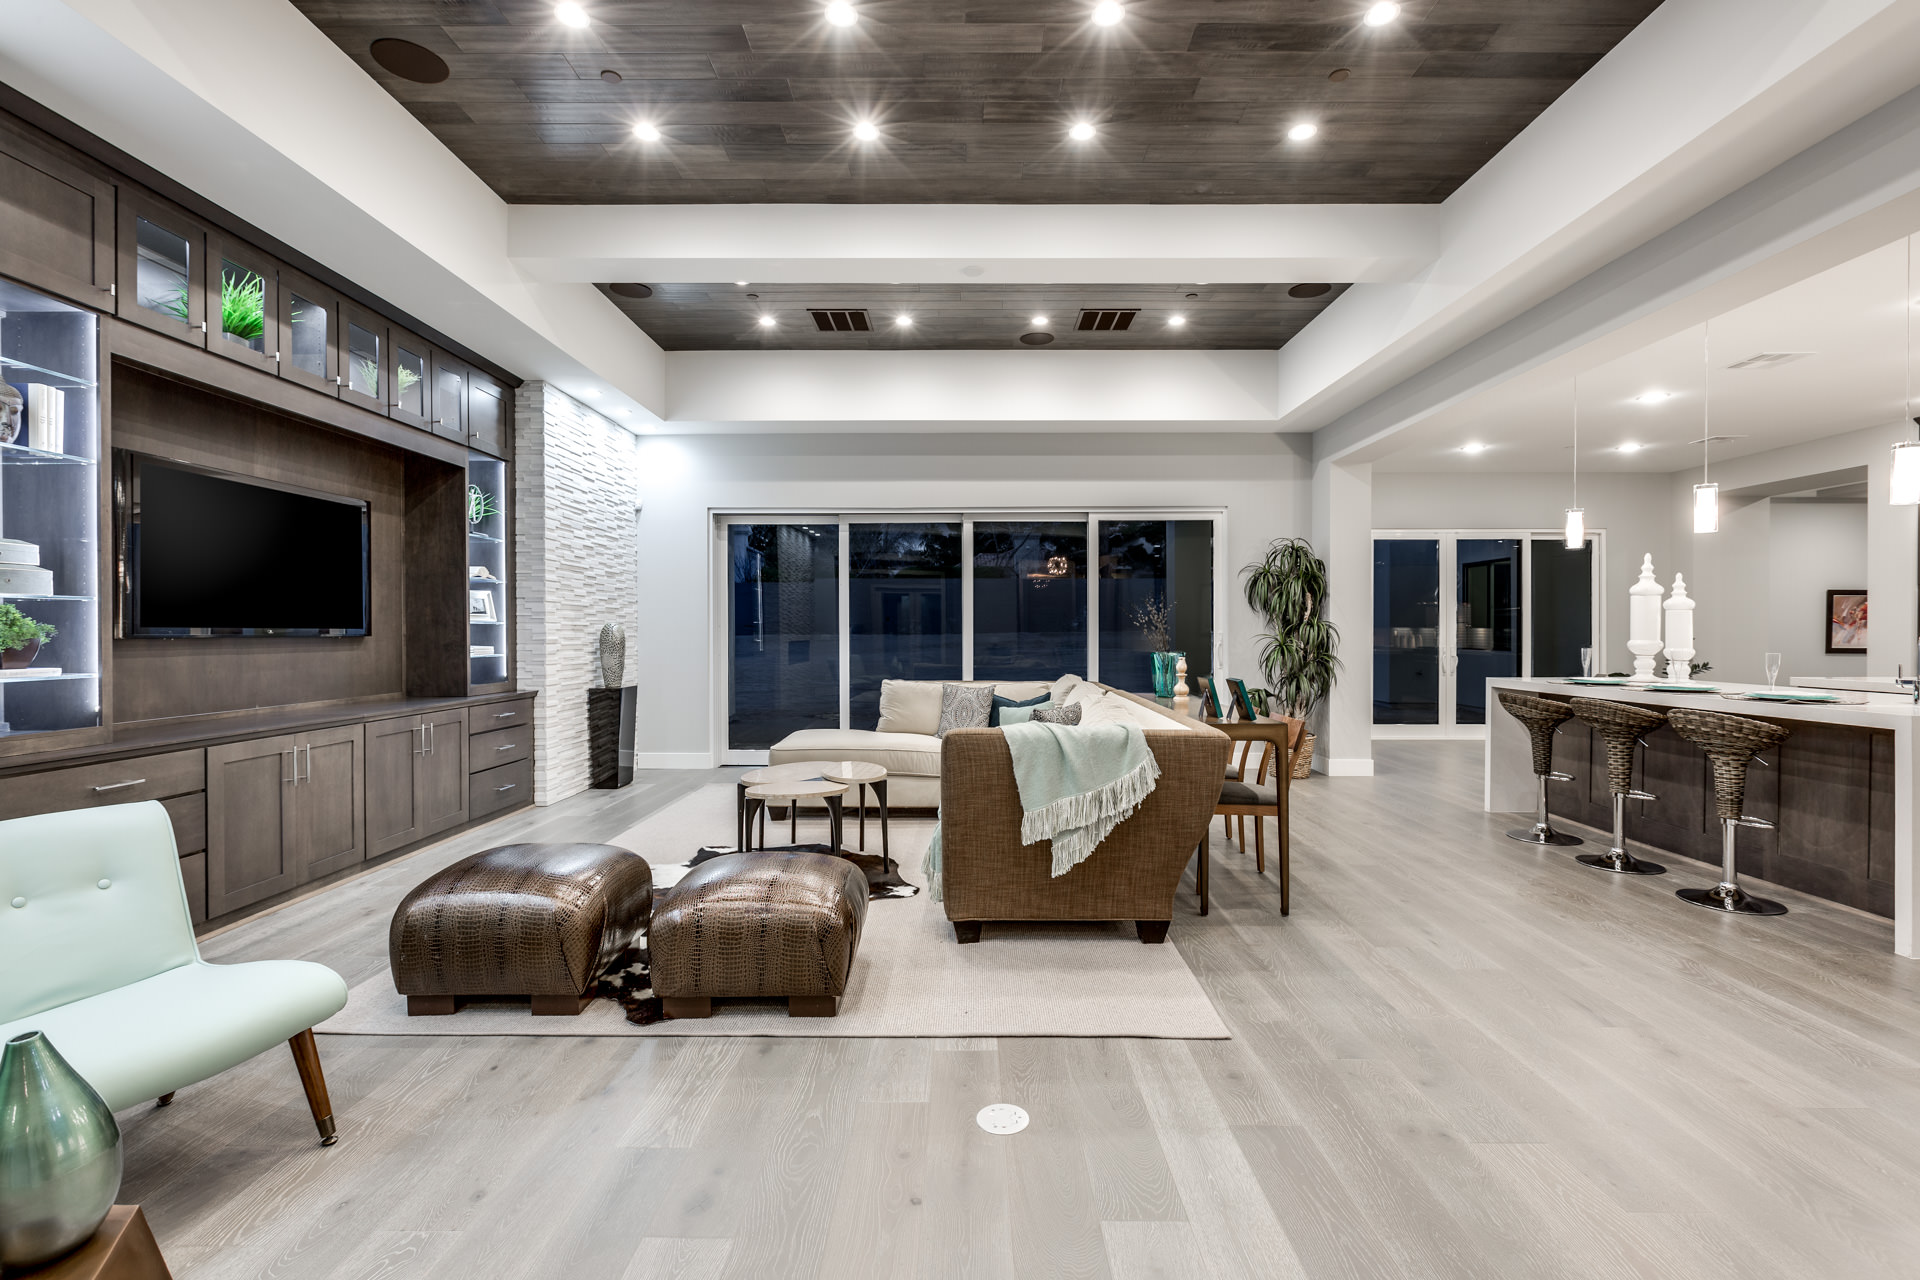 Section 10 luxury homes las vegas for Luxury homes las vegas for sale